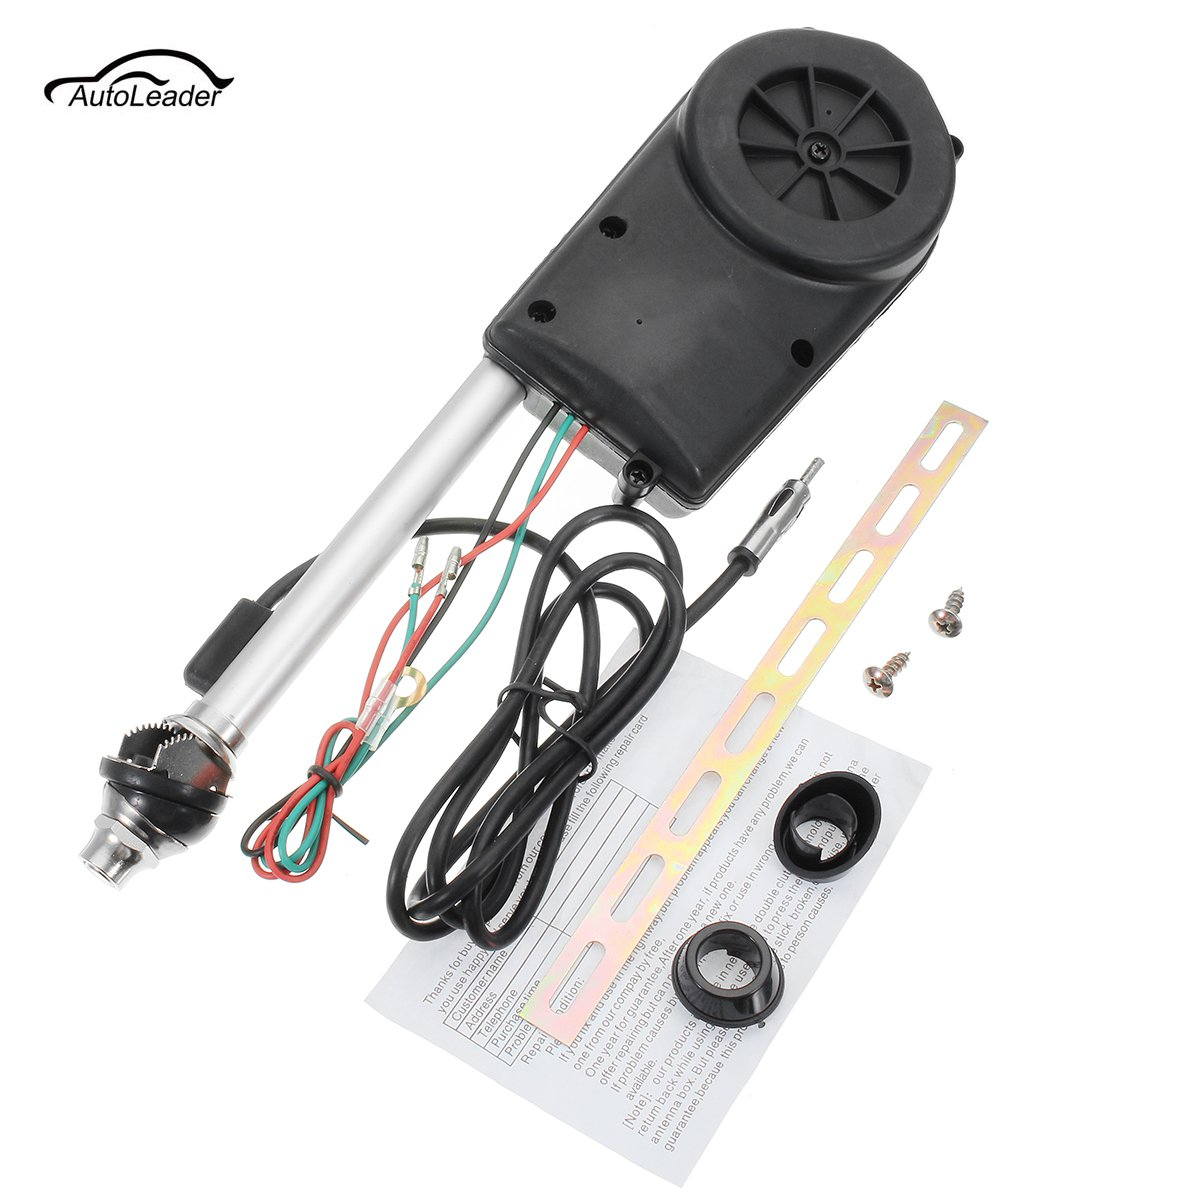 Car styling Universal Retractable Antenna Car Aerial Antenna Electric Radio Carro 12V FM AM Automatic Aerial